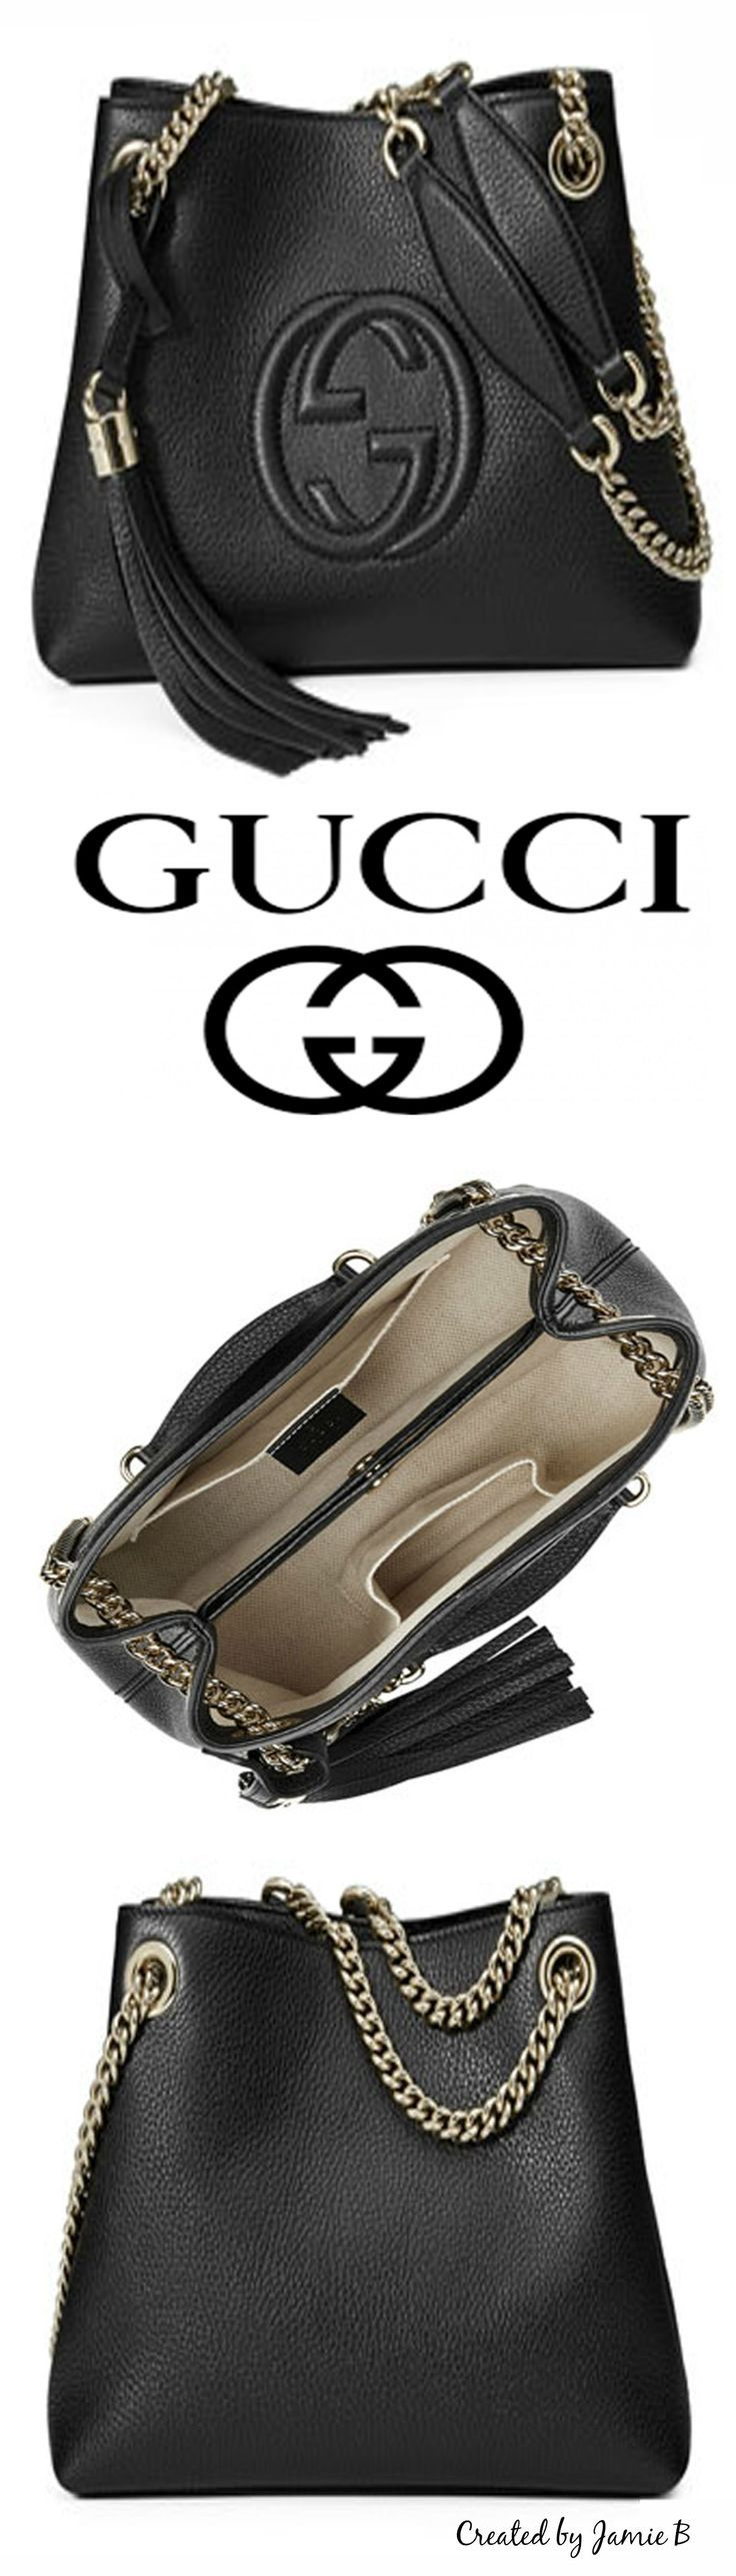 Gucci | Fall 2015 | Soho Extra-Small A-Shape Leather Shoulder Bag, Nero